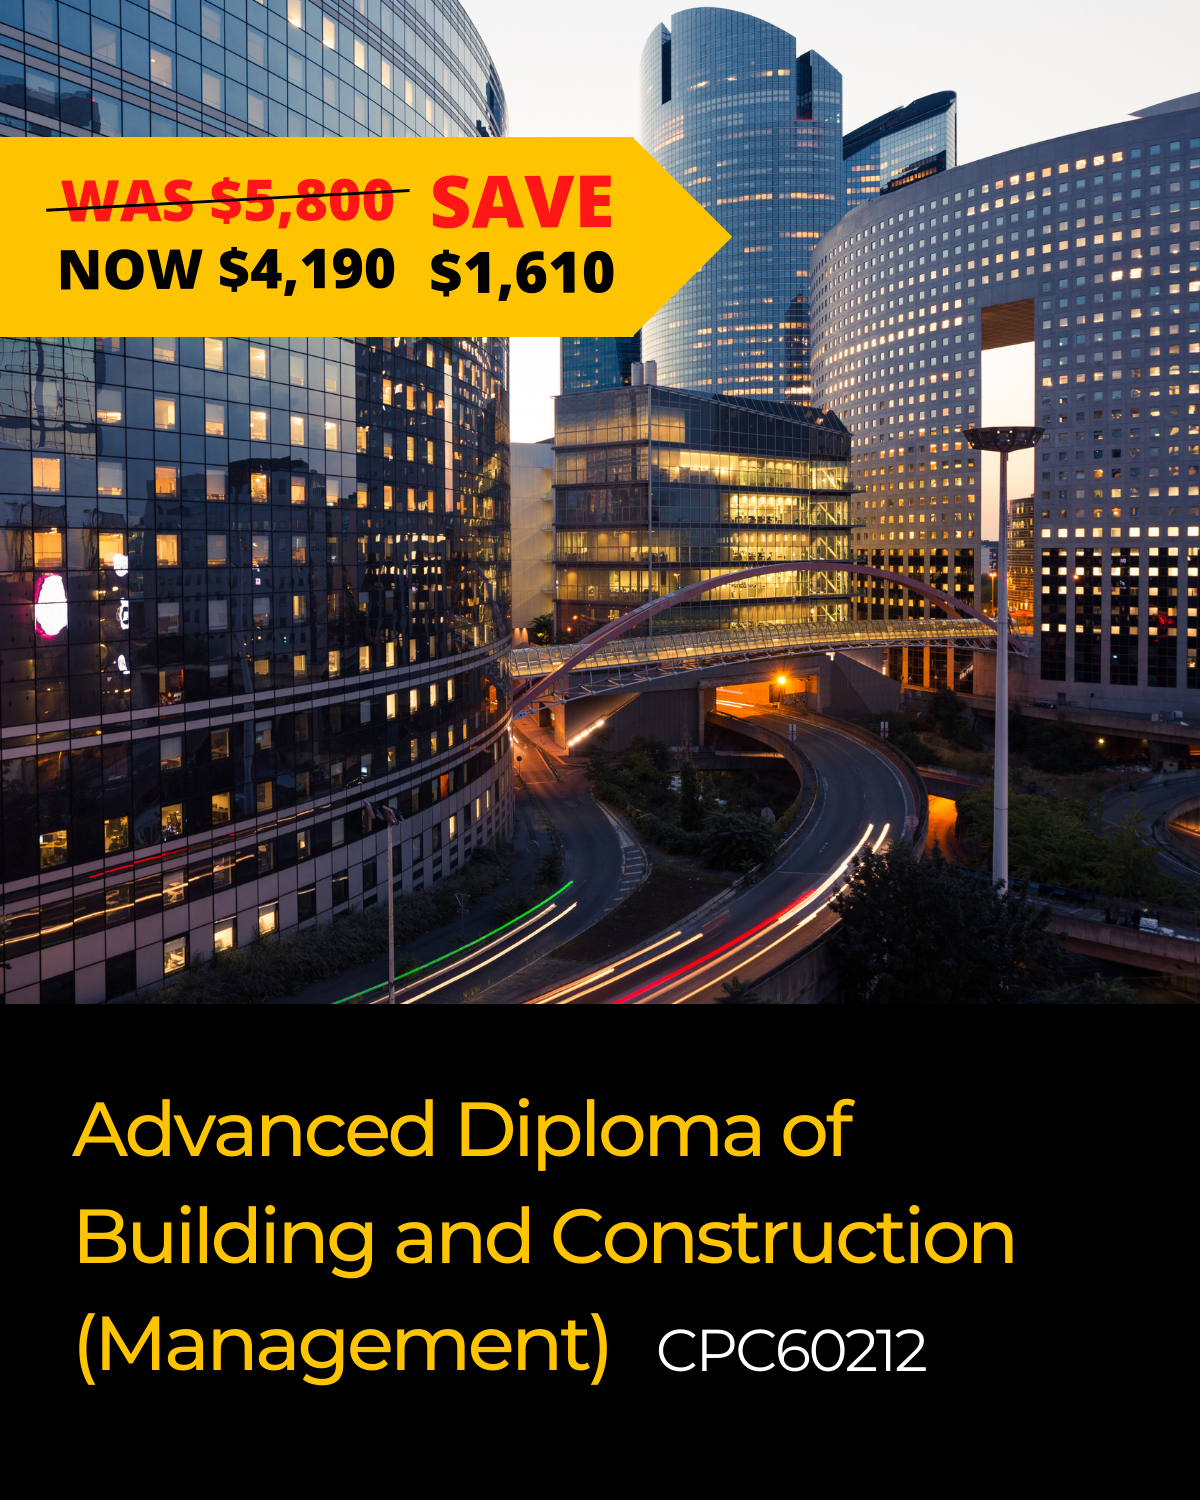 Advanced Diploma of Building and Construction (Management)